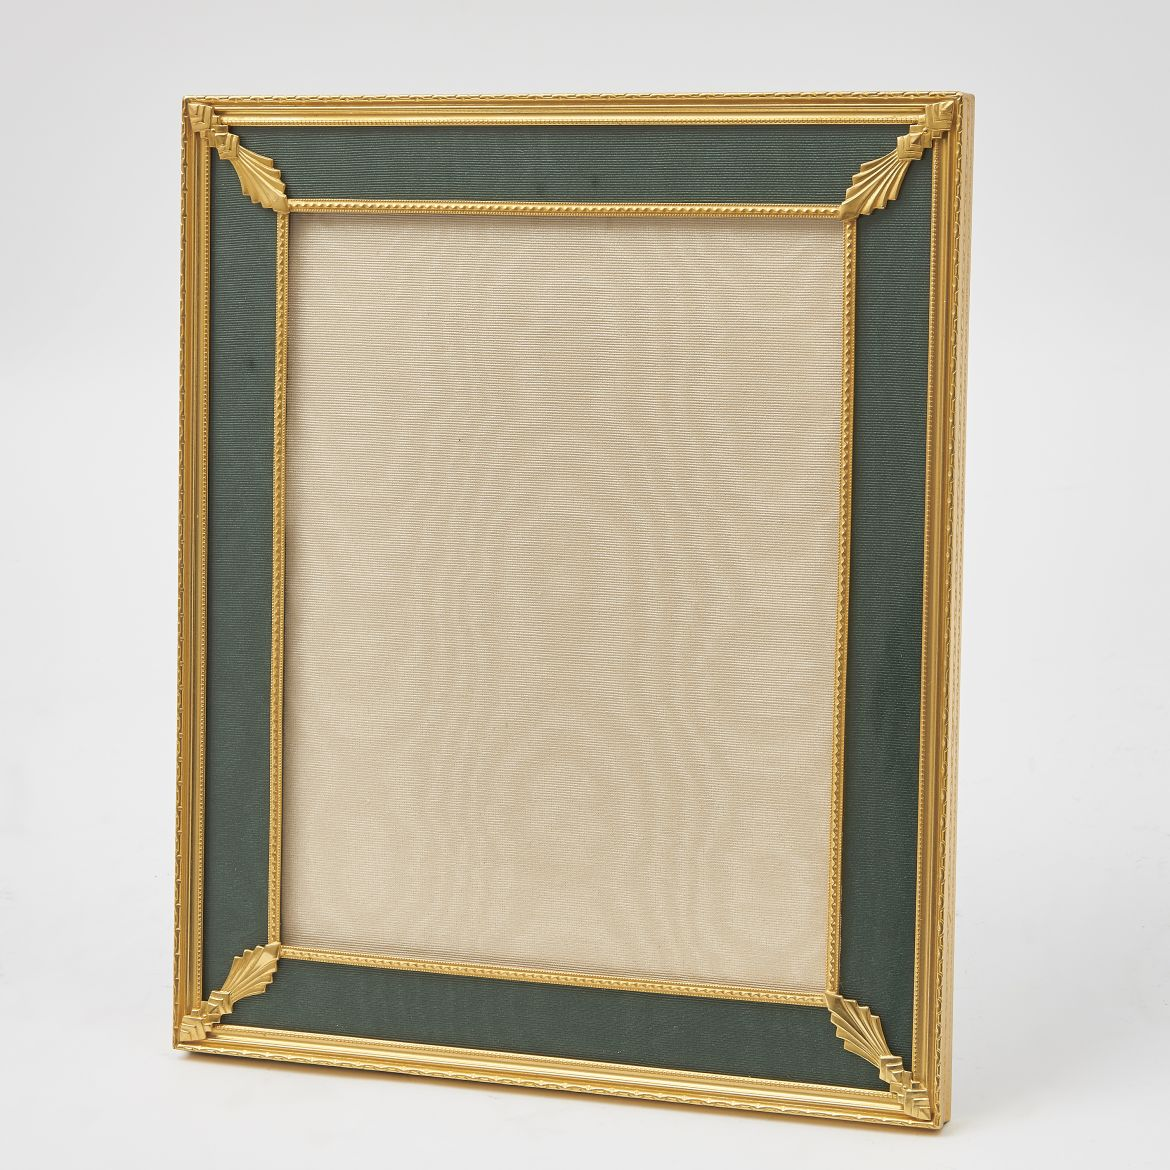 French Ormolu Frame with Green Slip